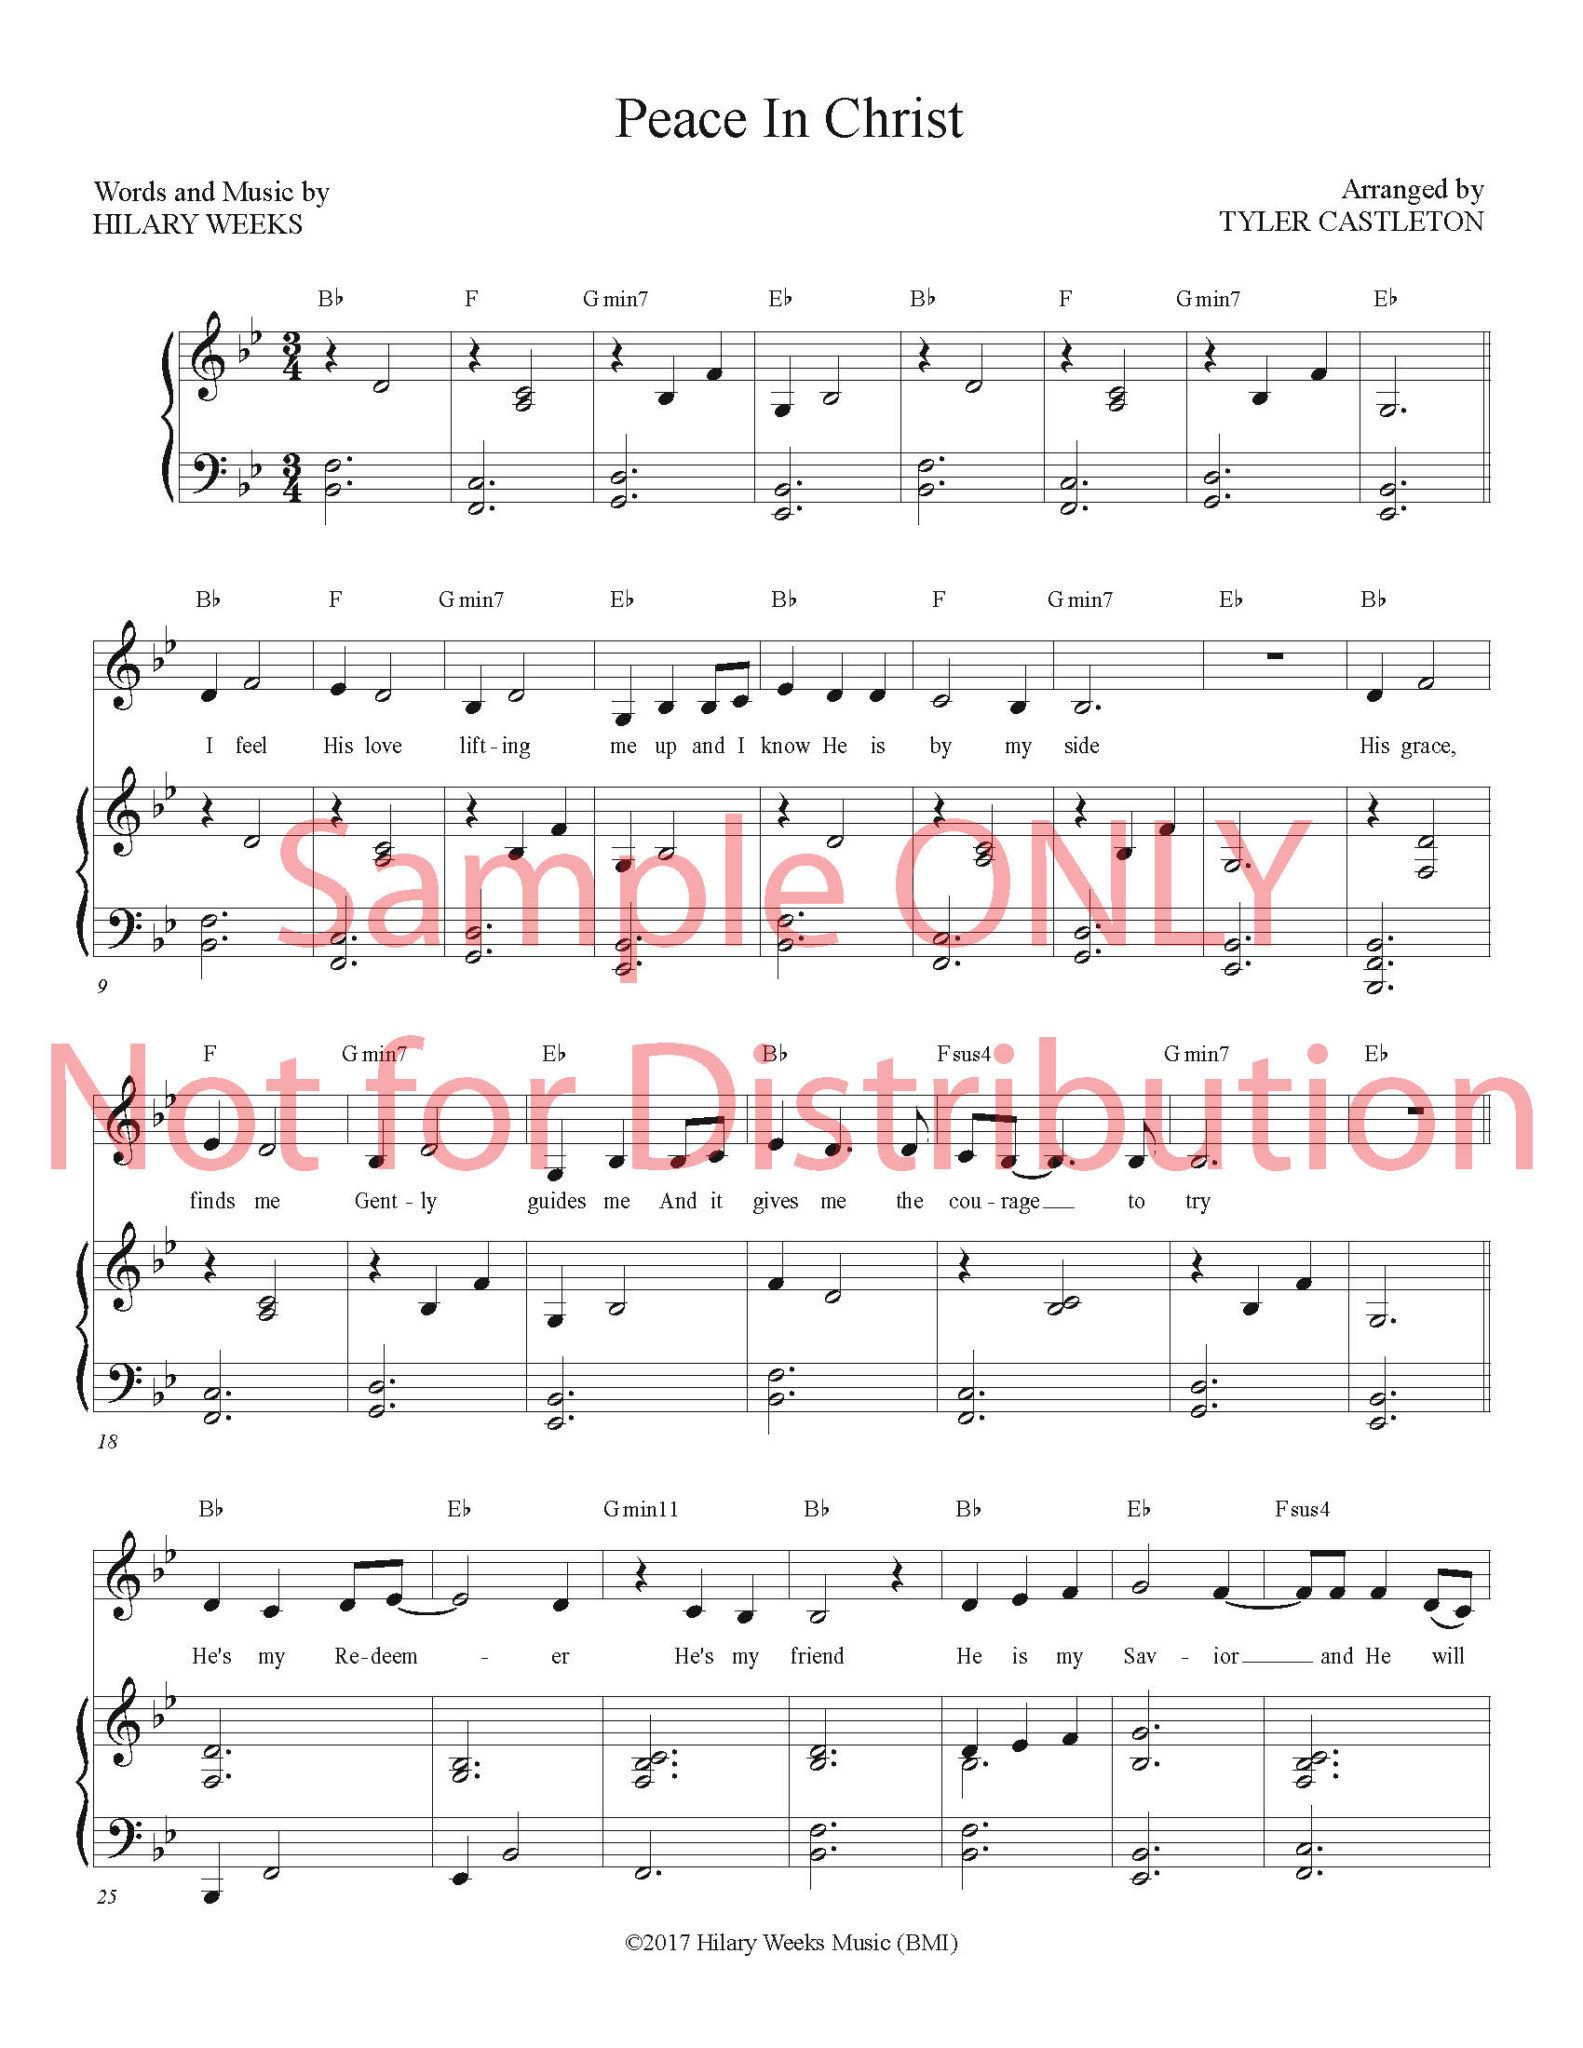 Peace in Christ - Sheet Music - written by Hilary Weeks (PDF